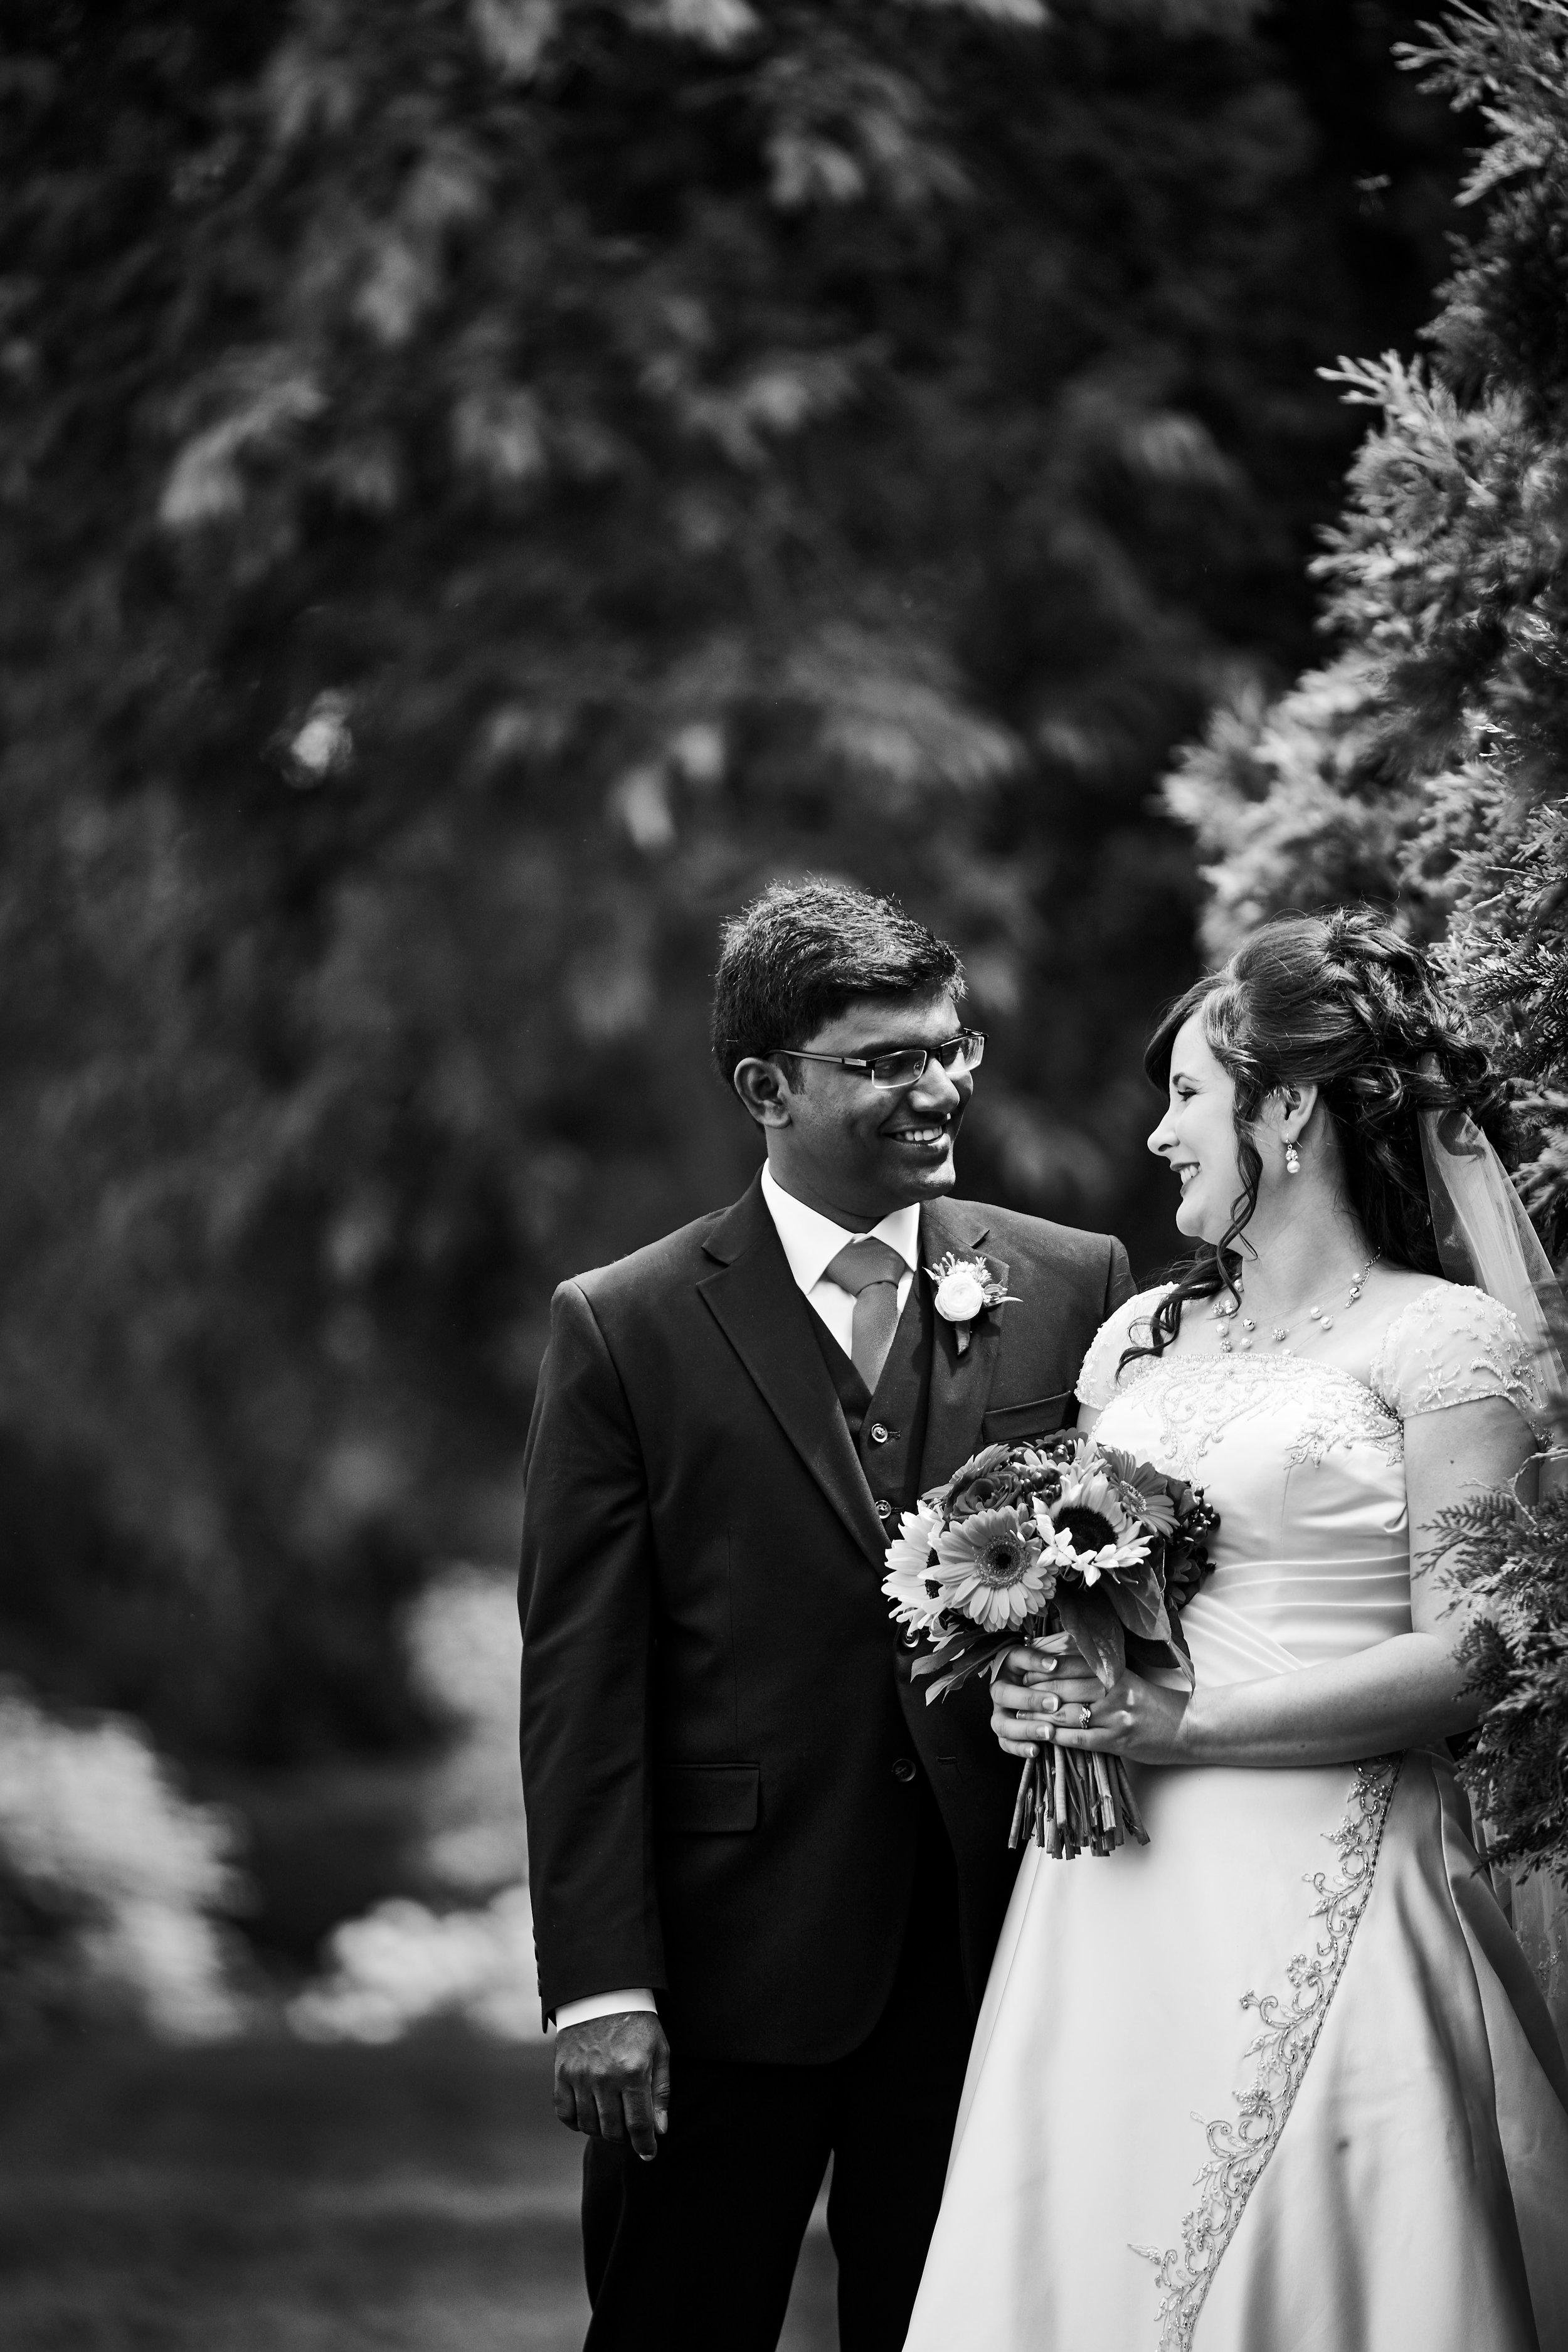 Angela & Krishna's Wedding - 327.jpg